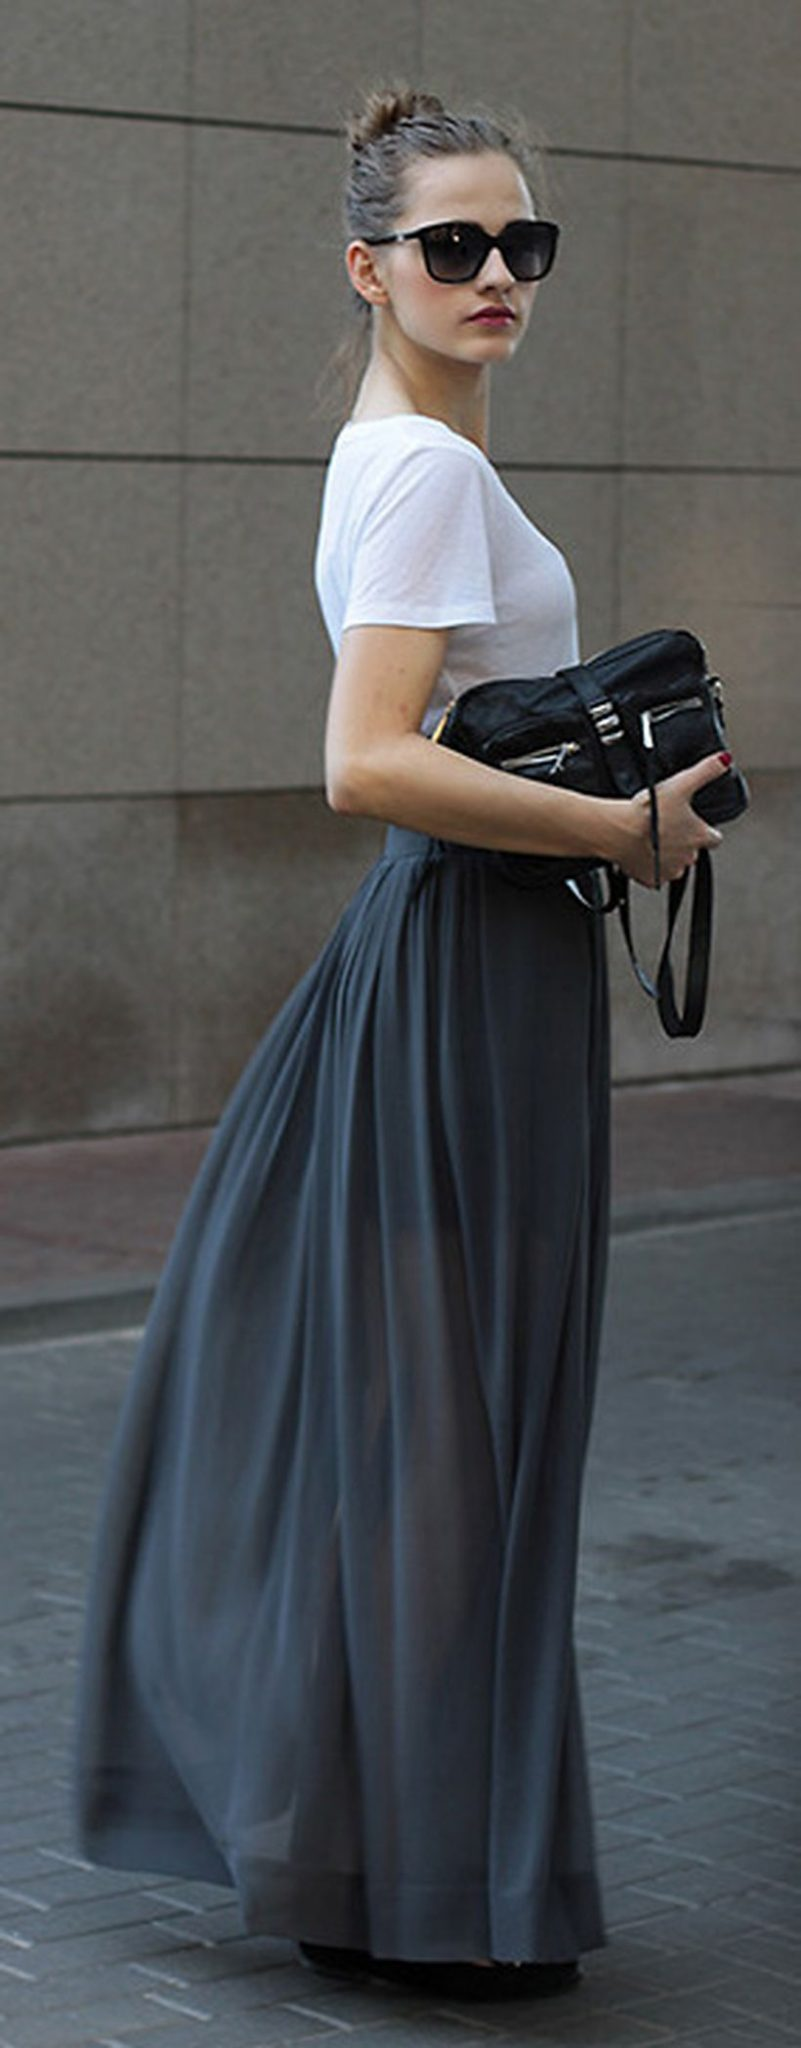 Cool tshirt and skirt for everyday outfits 37